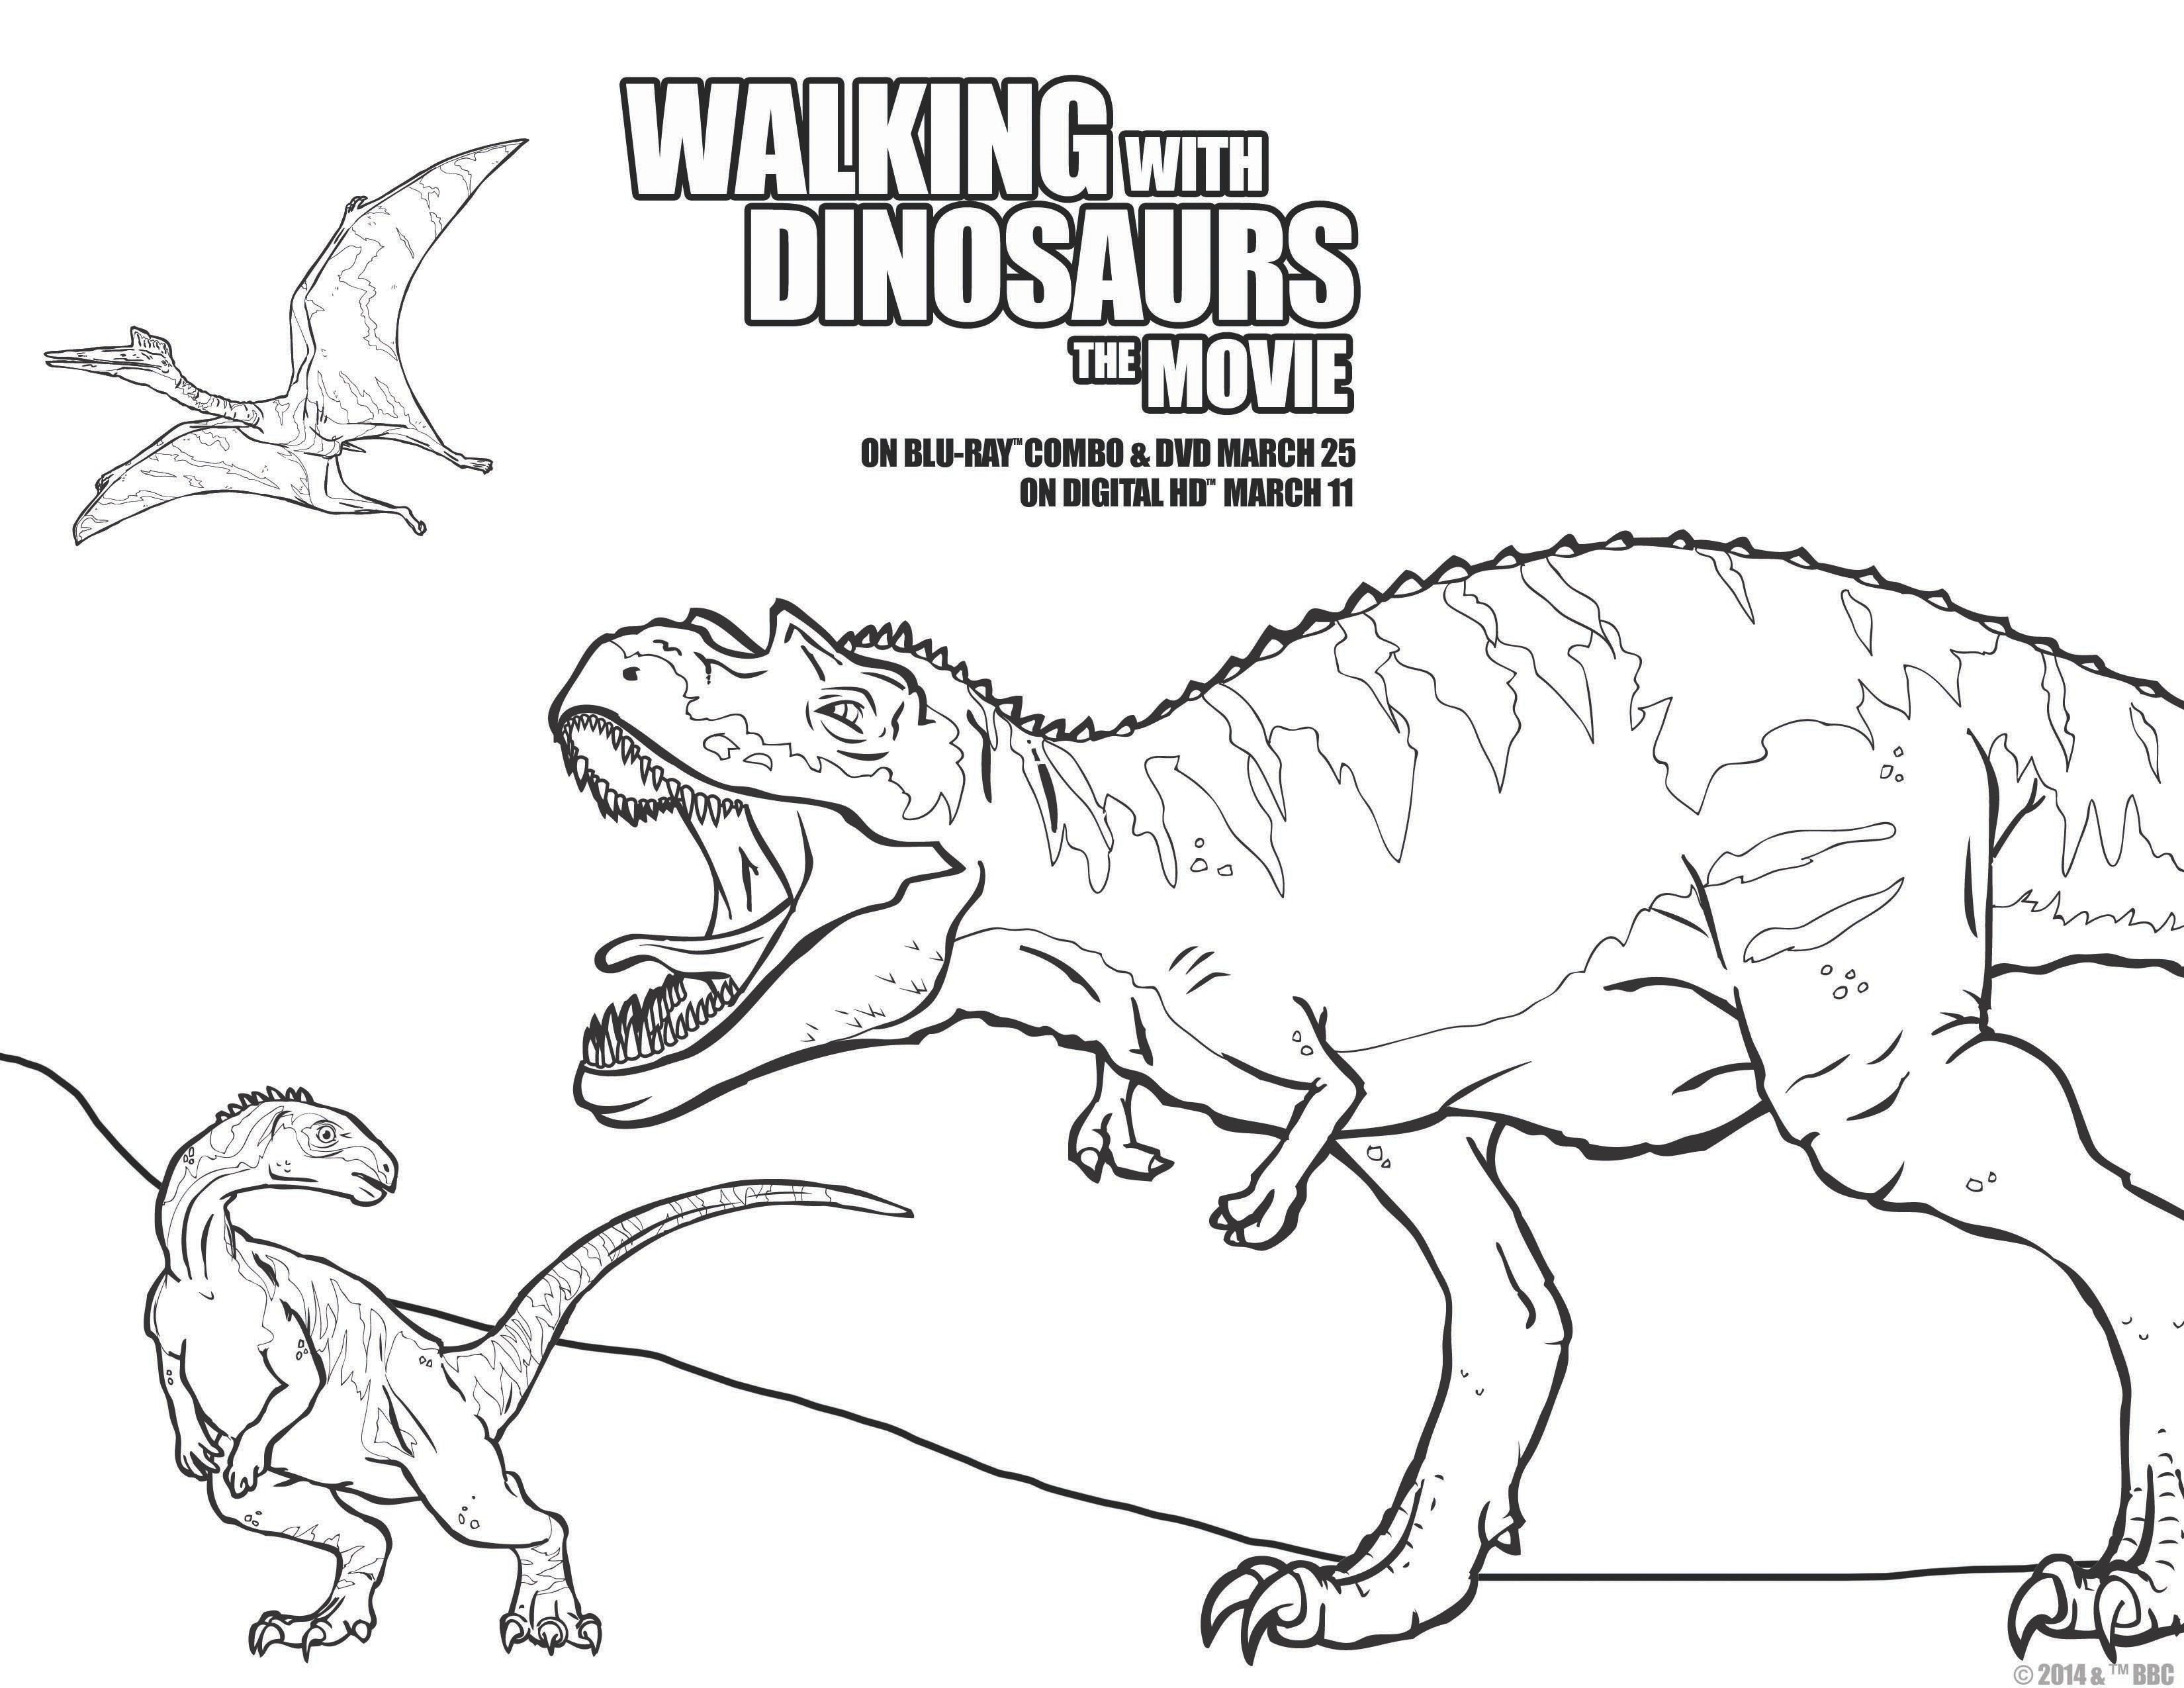 walkingwithdinosdvd free printable walking with dinosaurs the movie coloring pages and activity sheets